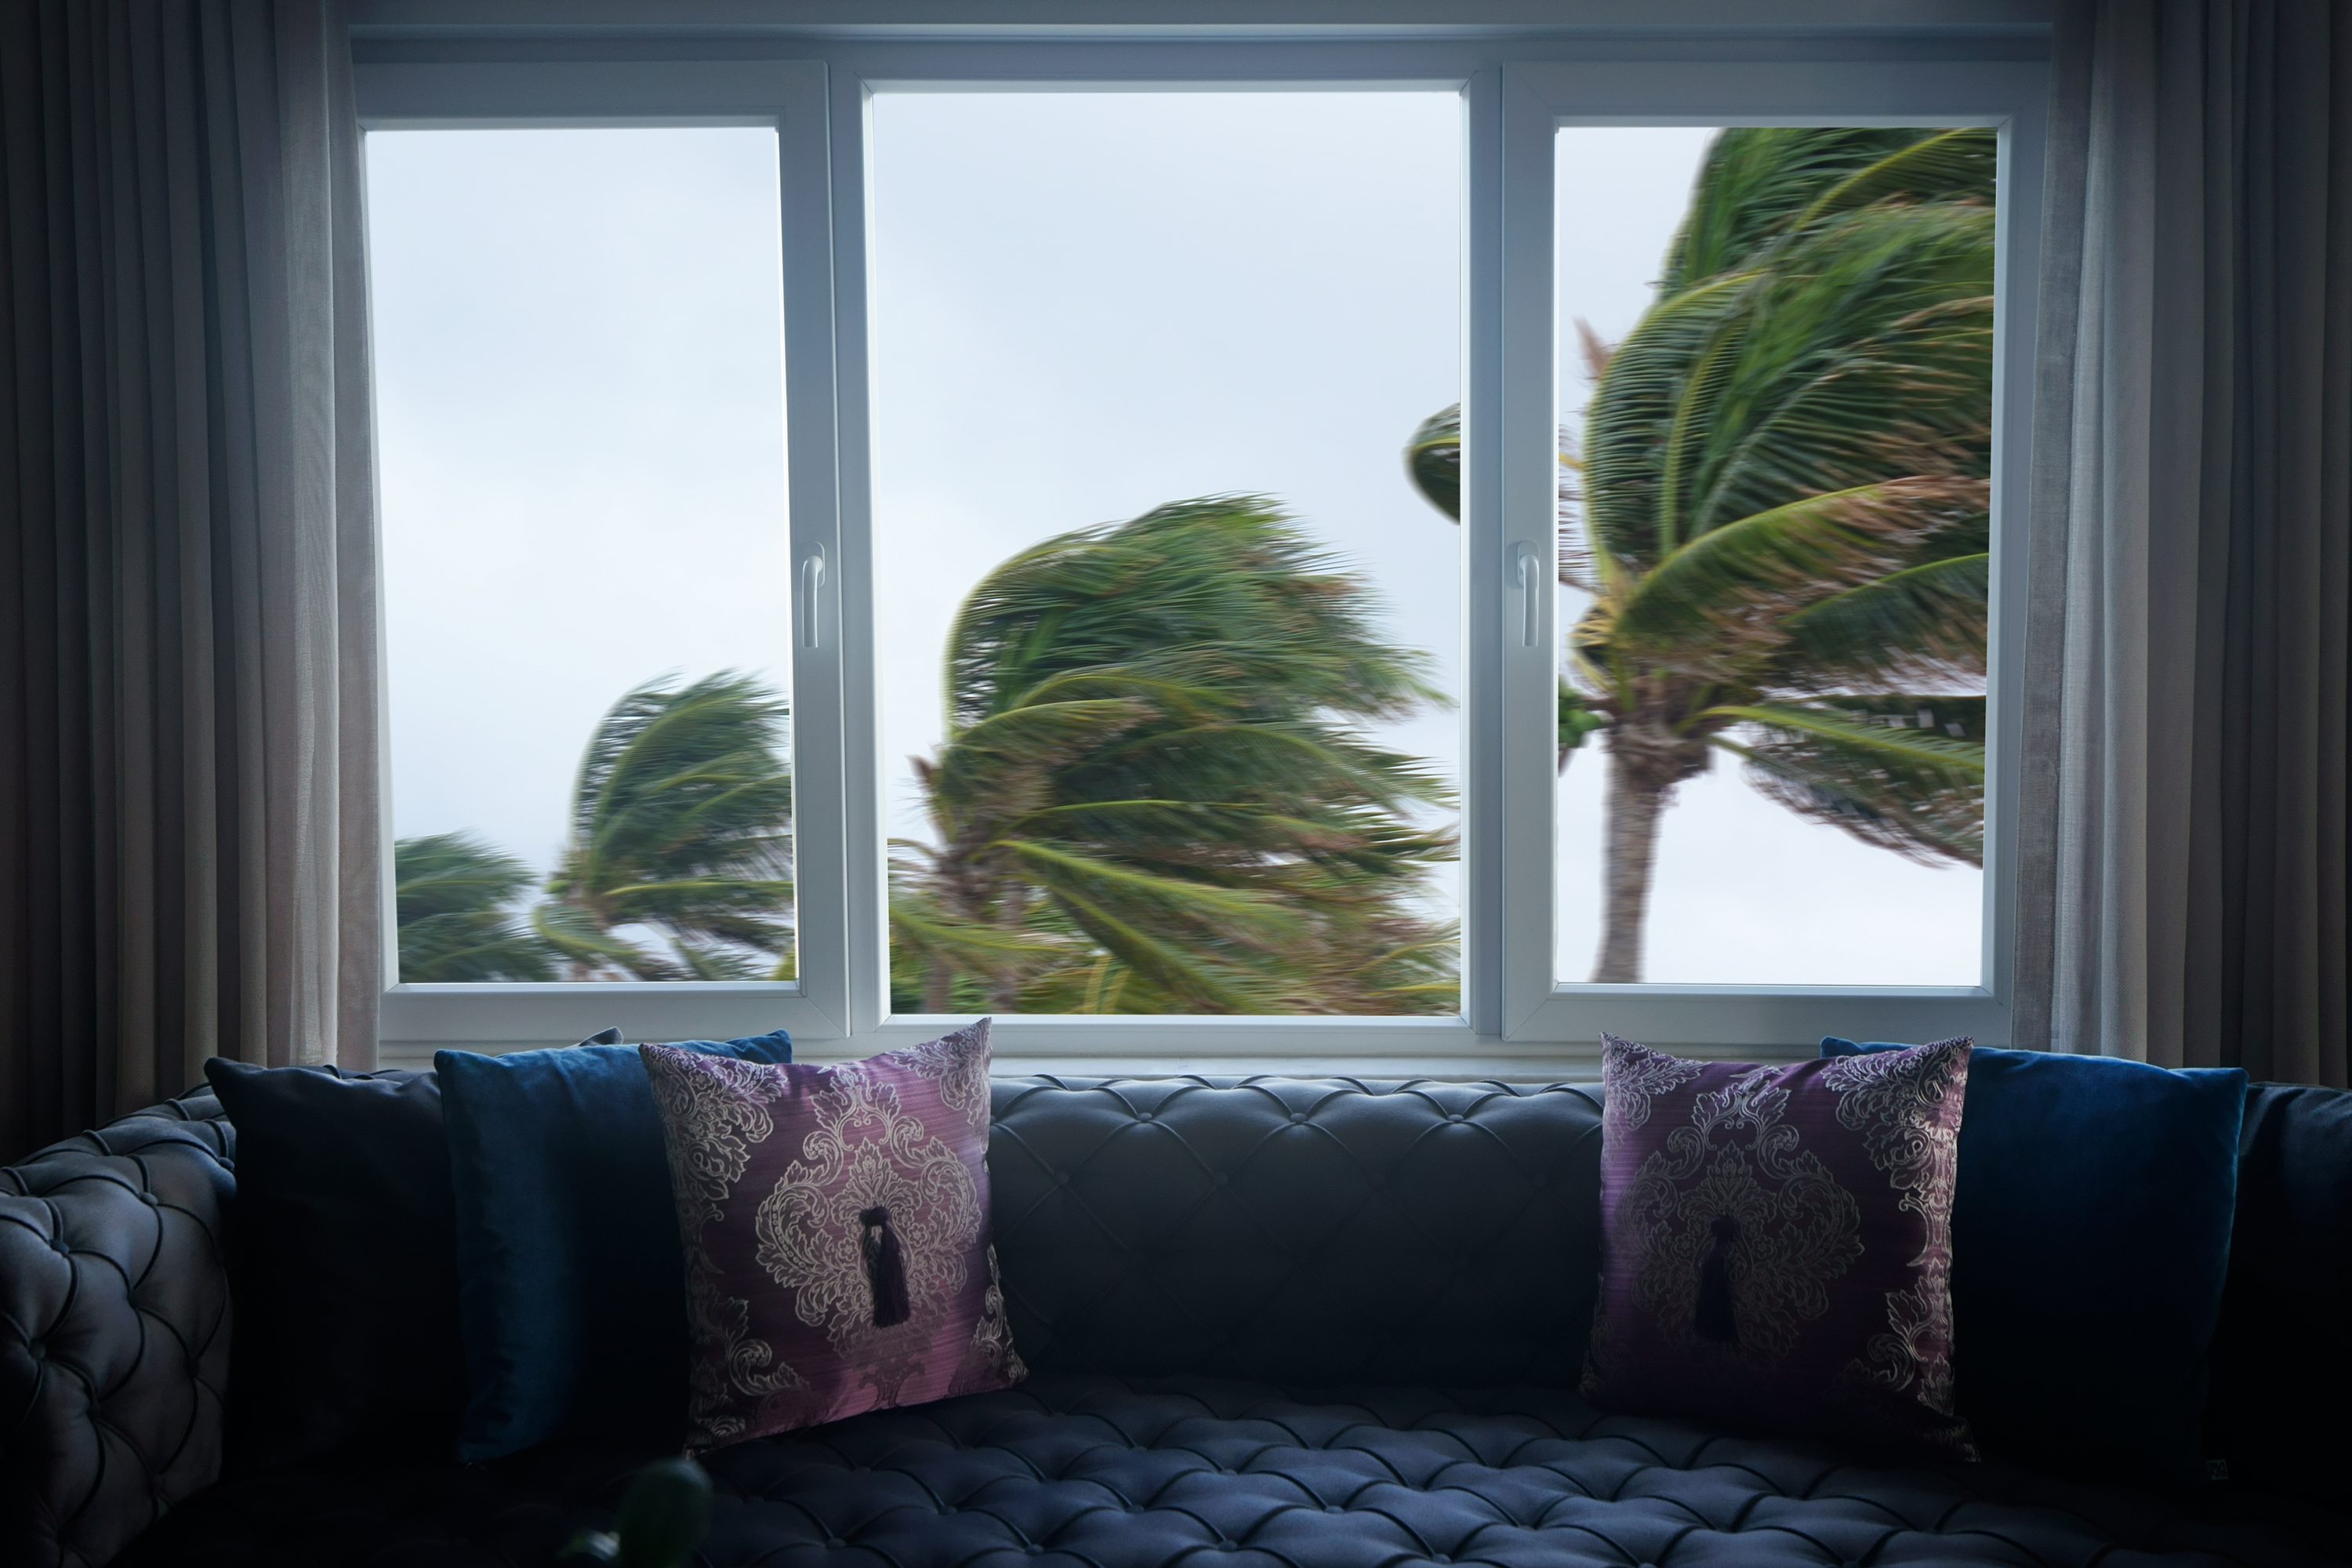 View of palm trees blowing in the wind outside the window.